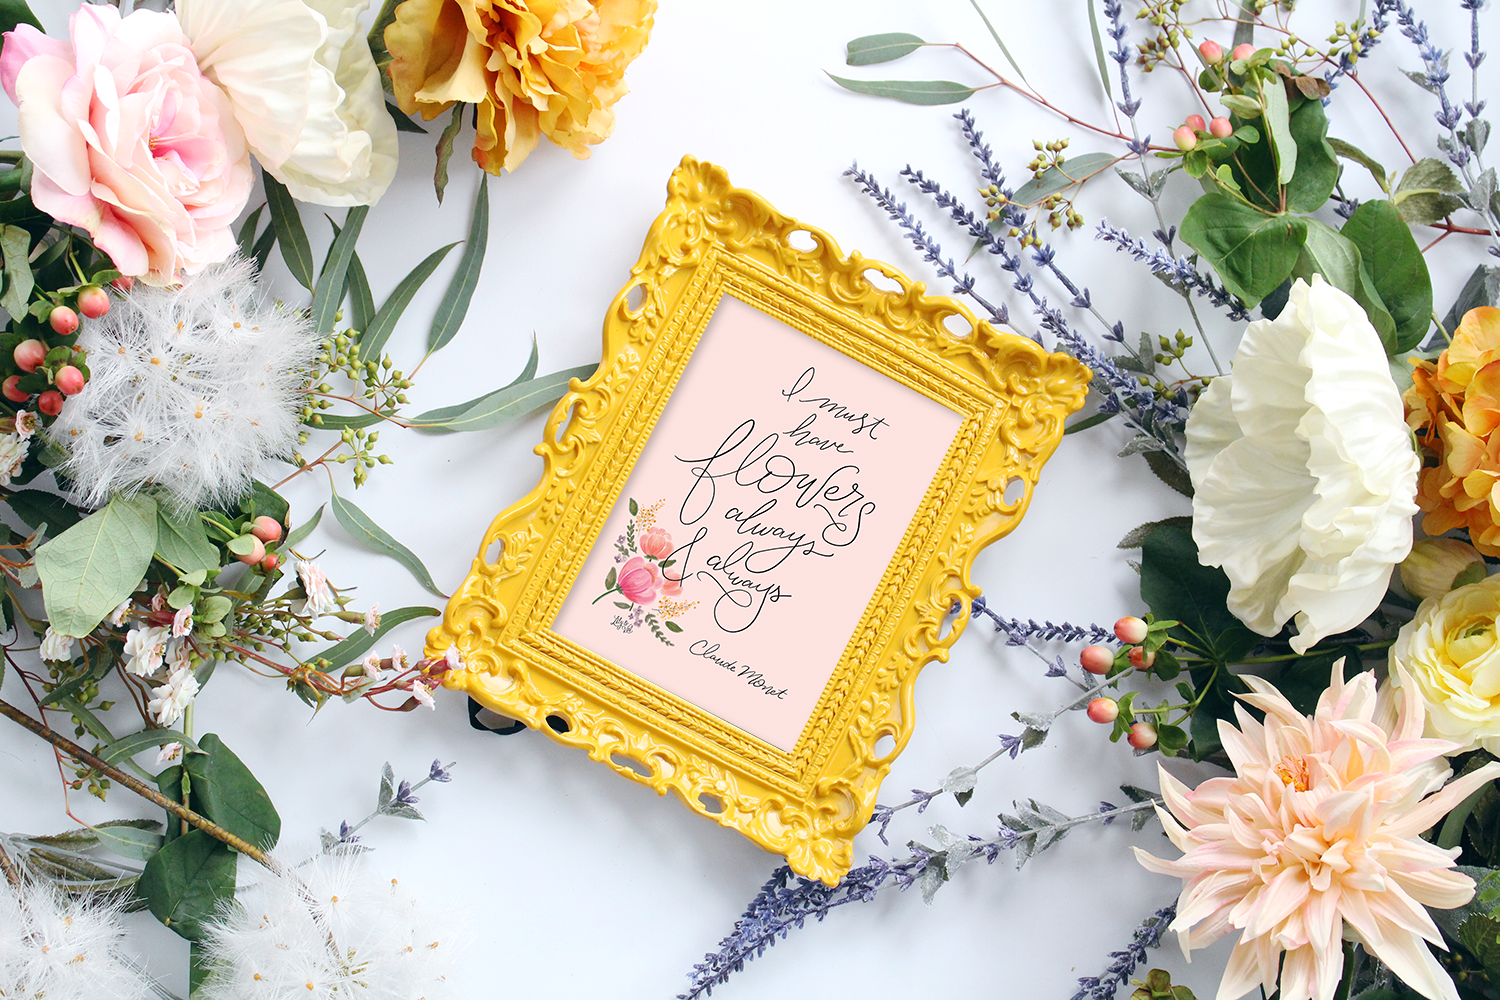 I must have flowers always and always - Claud Monet ; Hand-drawn Print by Lily & Val